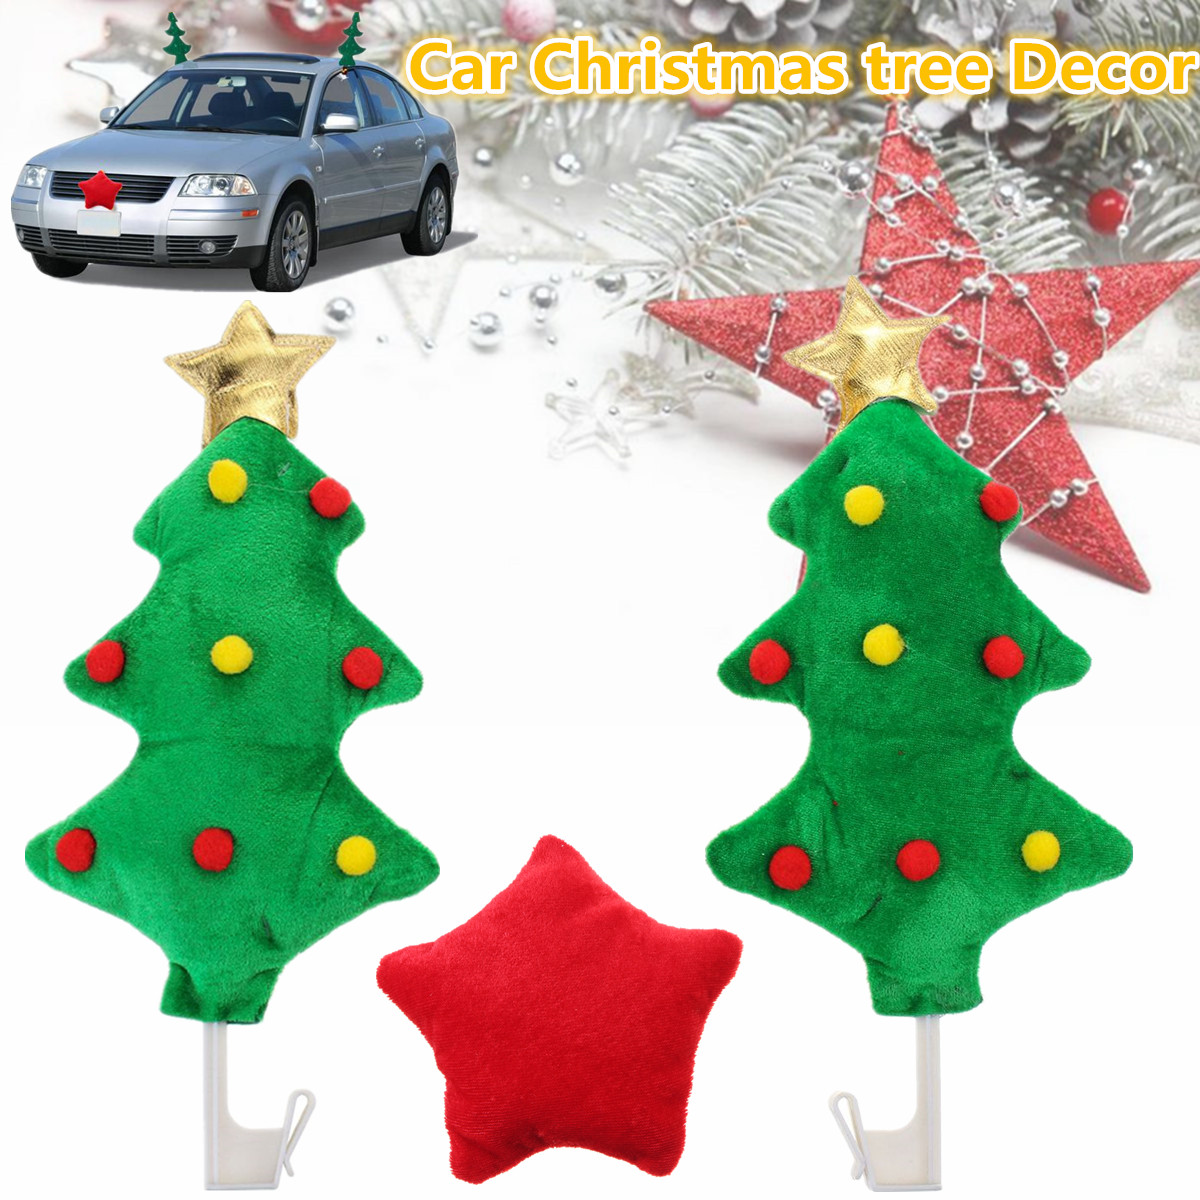 Car Christmas Ornaments.Us 7 5 2x Car Christmas Tree Decoration Red Star Style Ornament Auto Costume Christmas Decor In Ornaments From Automobiles Motorcycles On